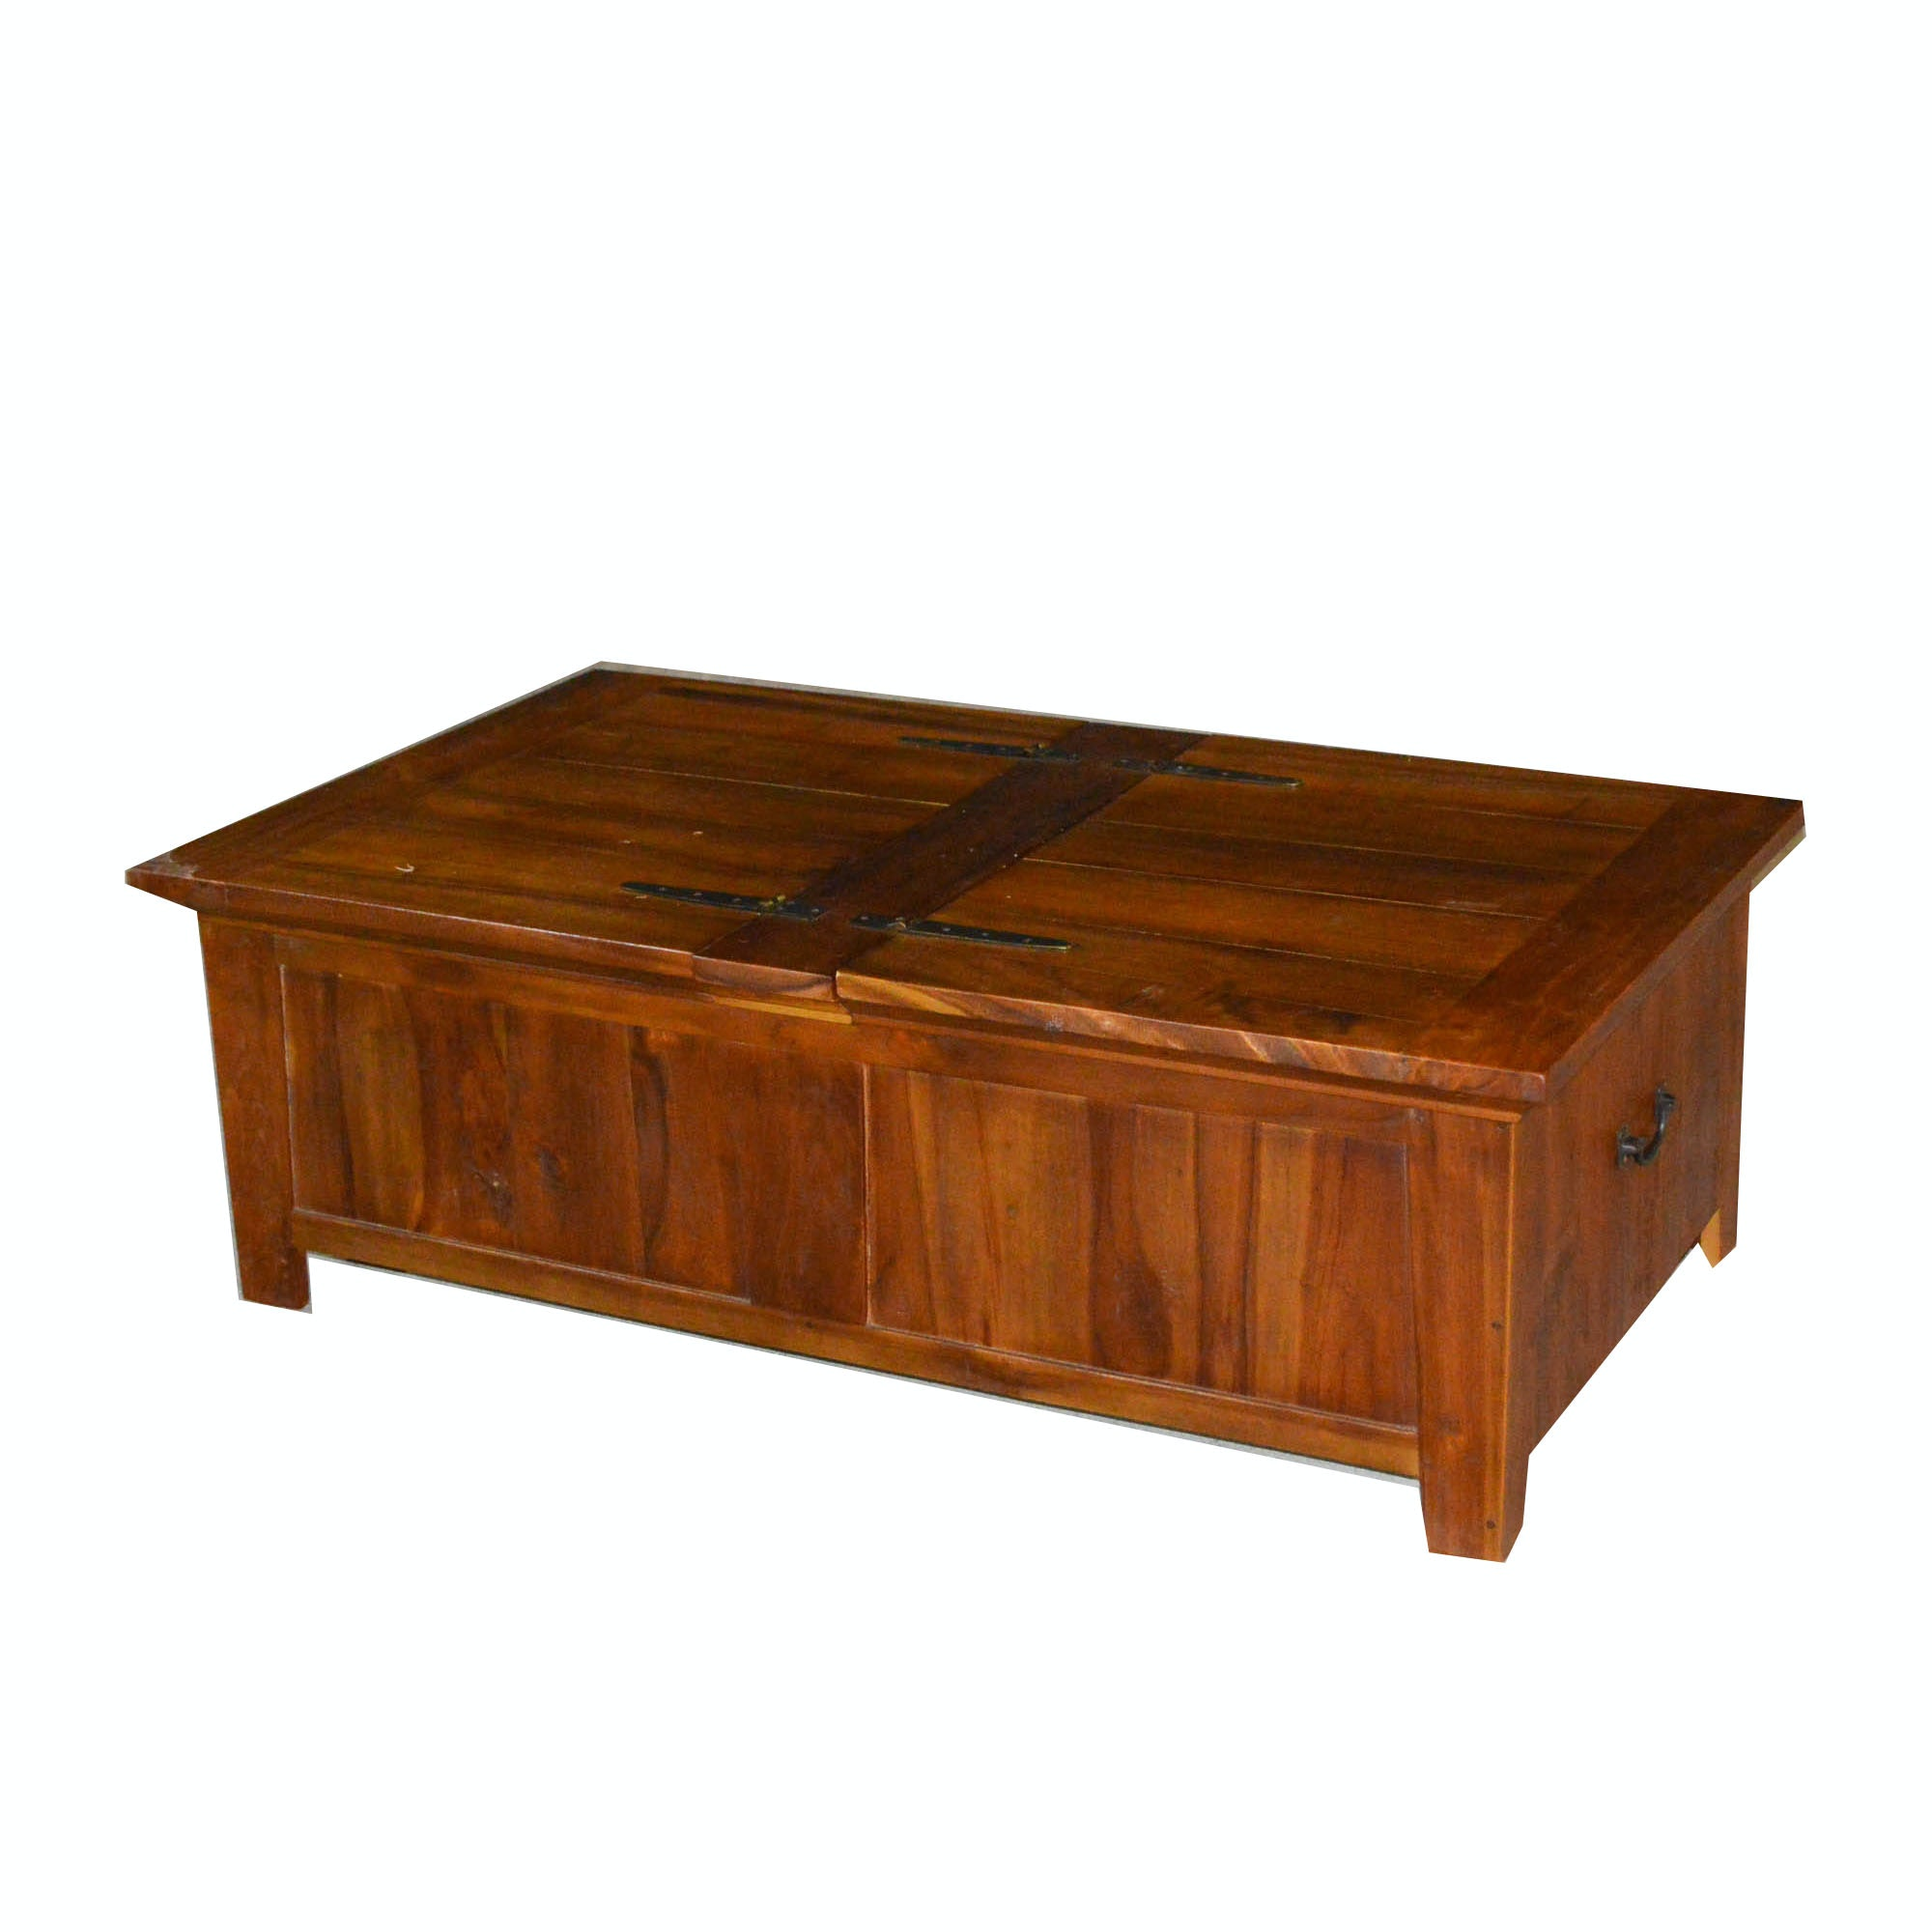 Charmant Rustic Hand Crafted Coffee Table With Hinged Storage ...